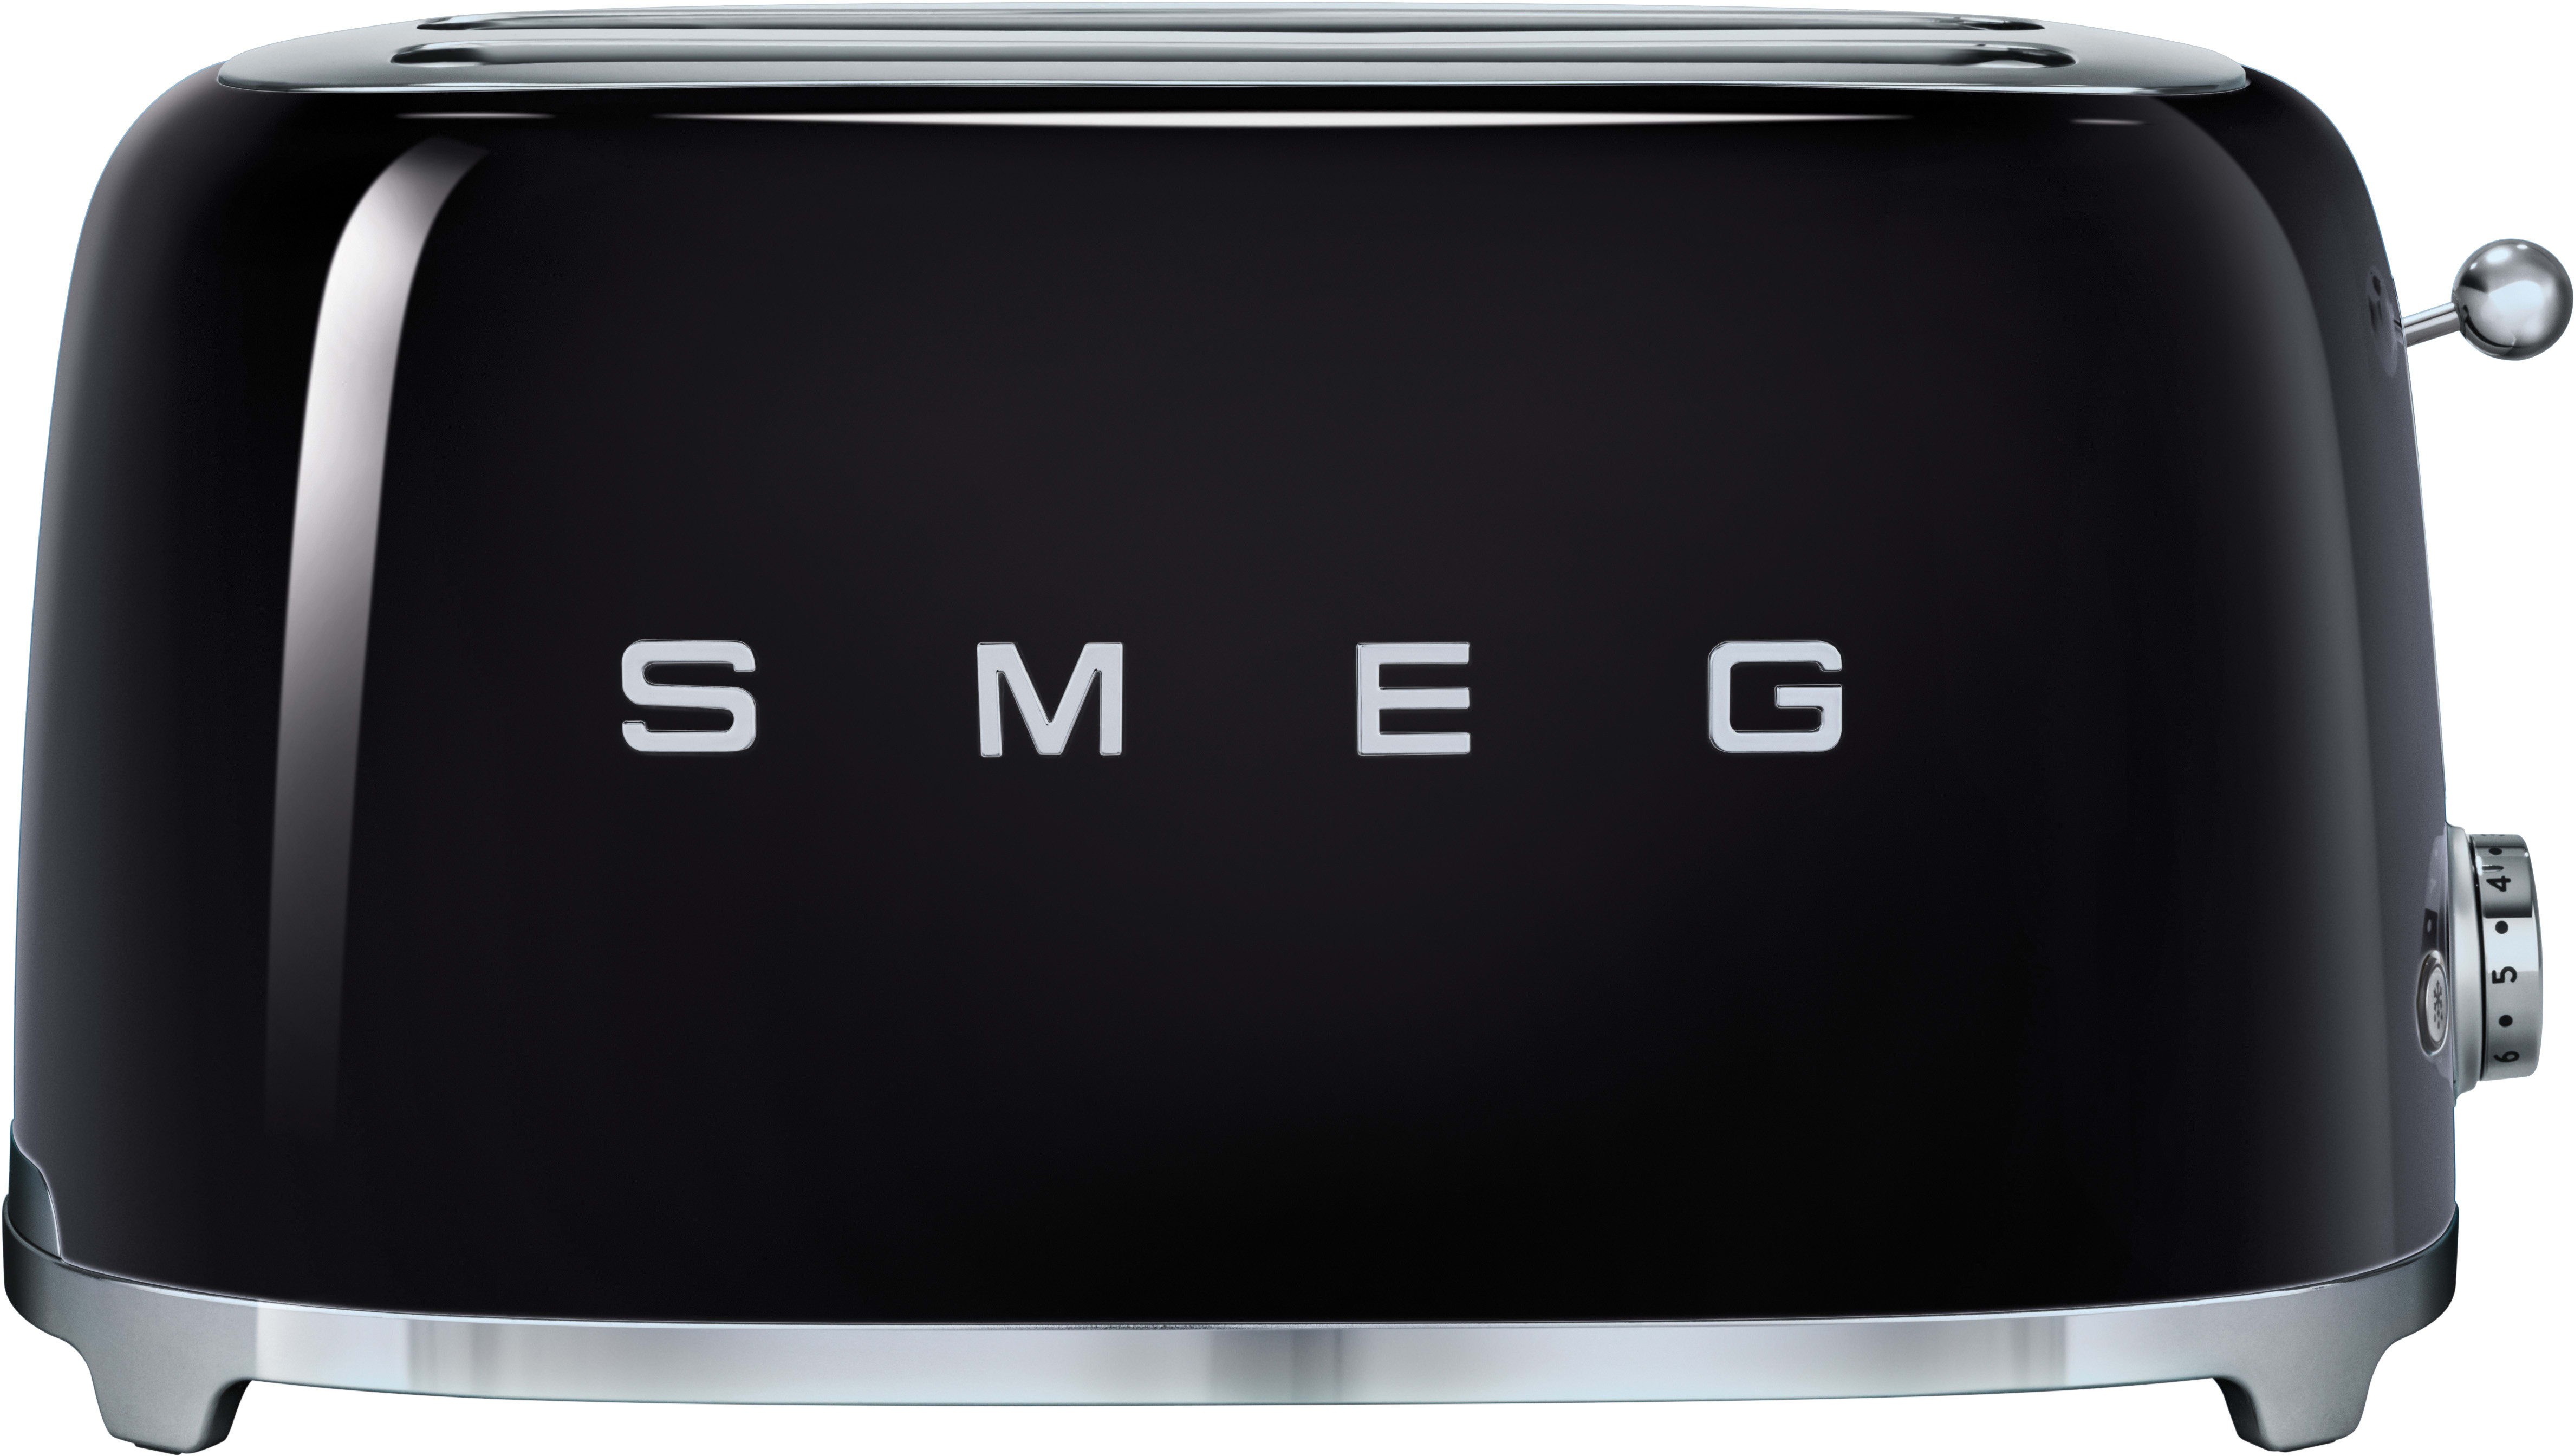 free main decker about bagel details itm black shipping slice toaster image